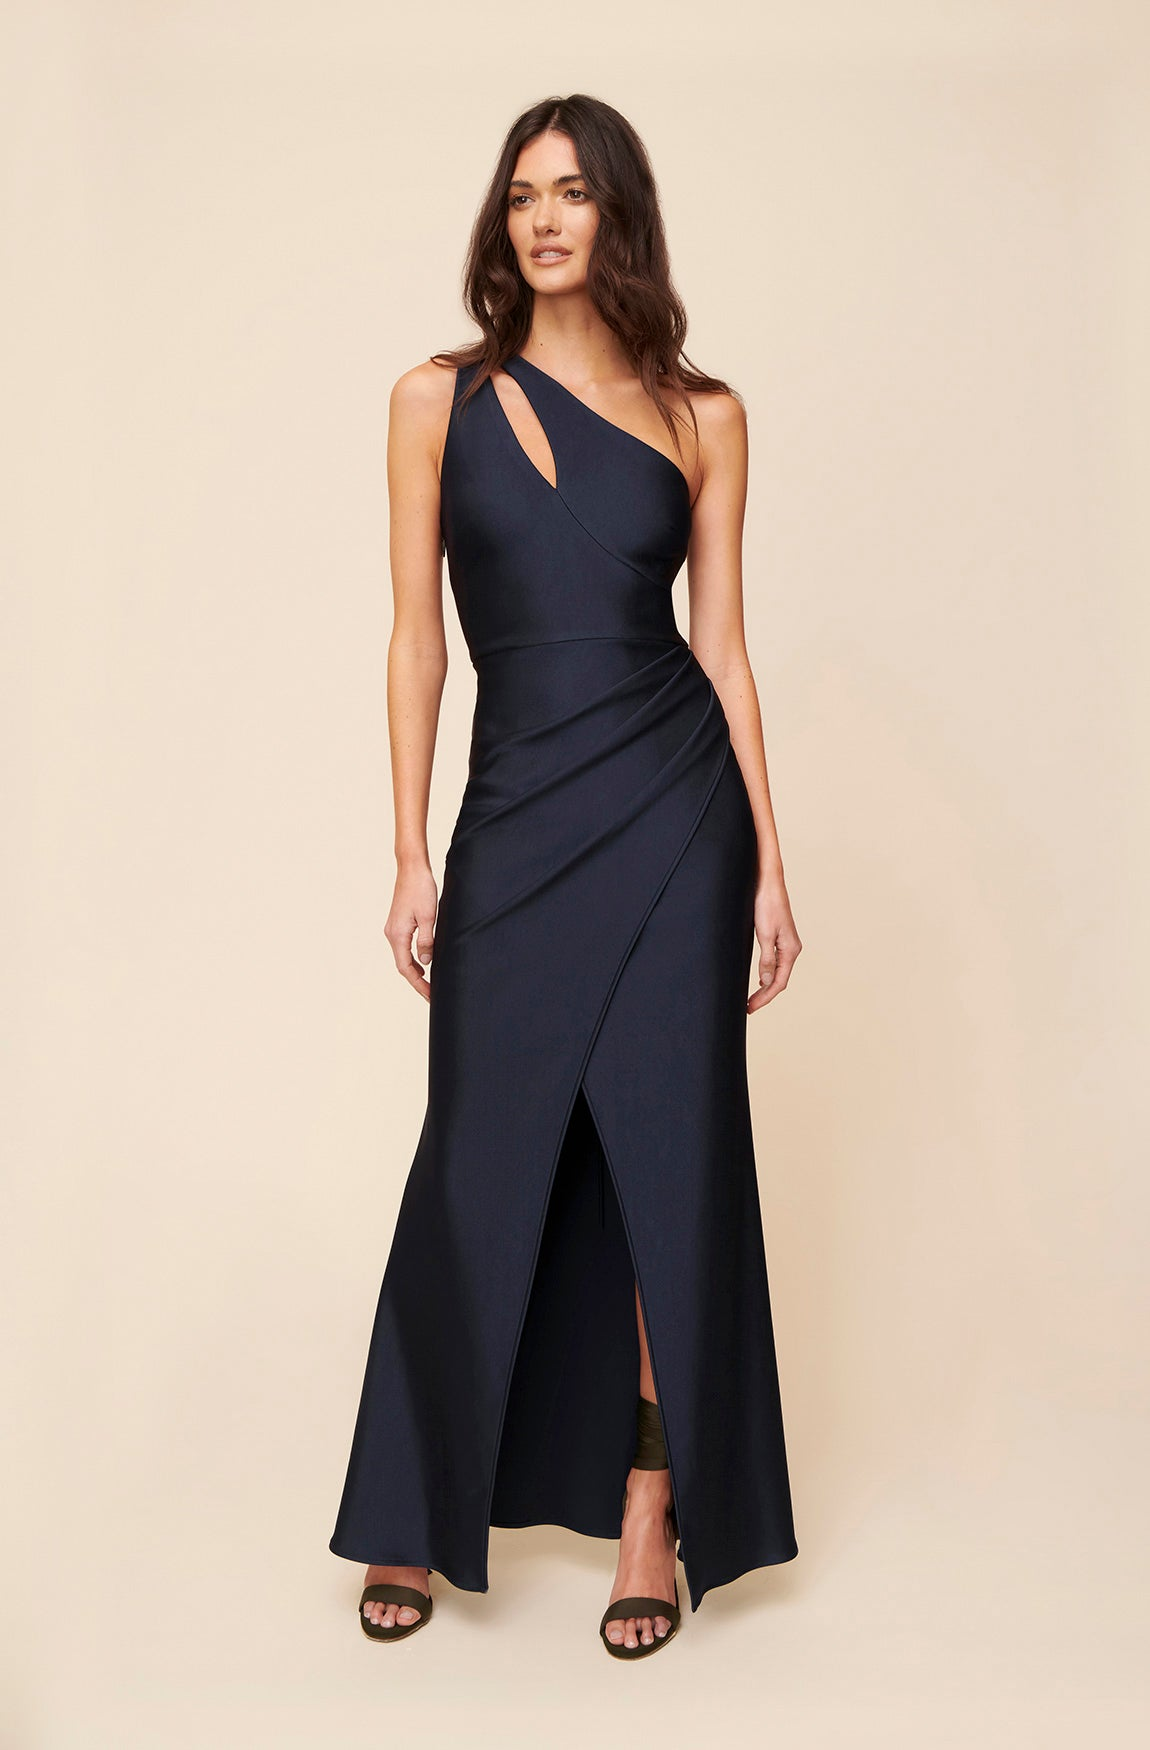 MATRIX MAXI DRESS